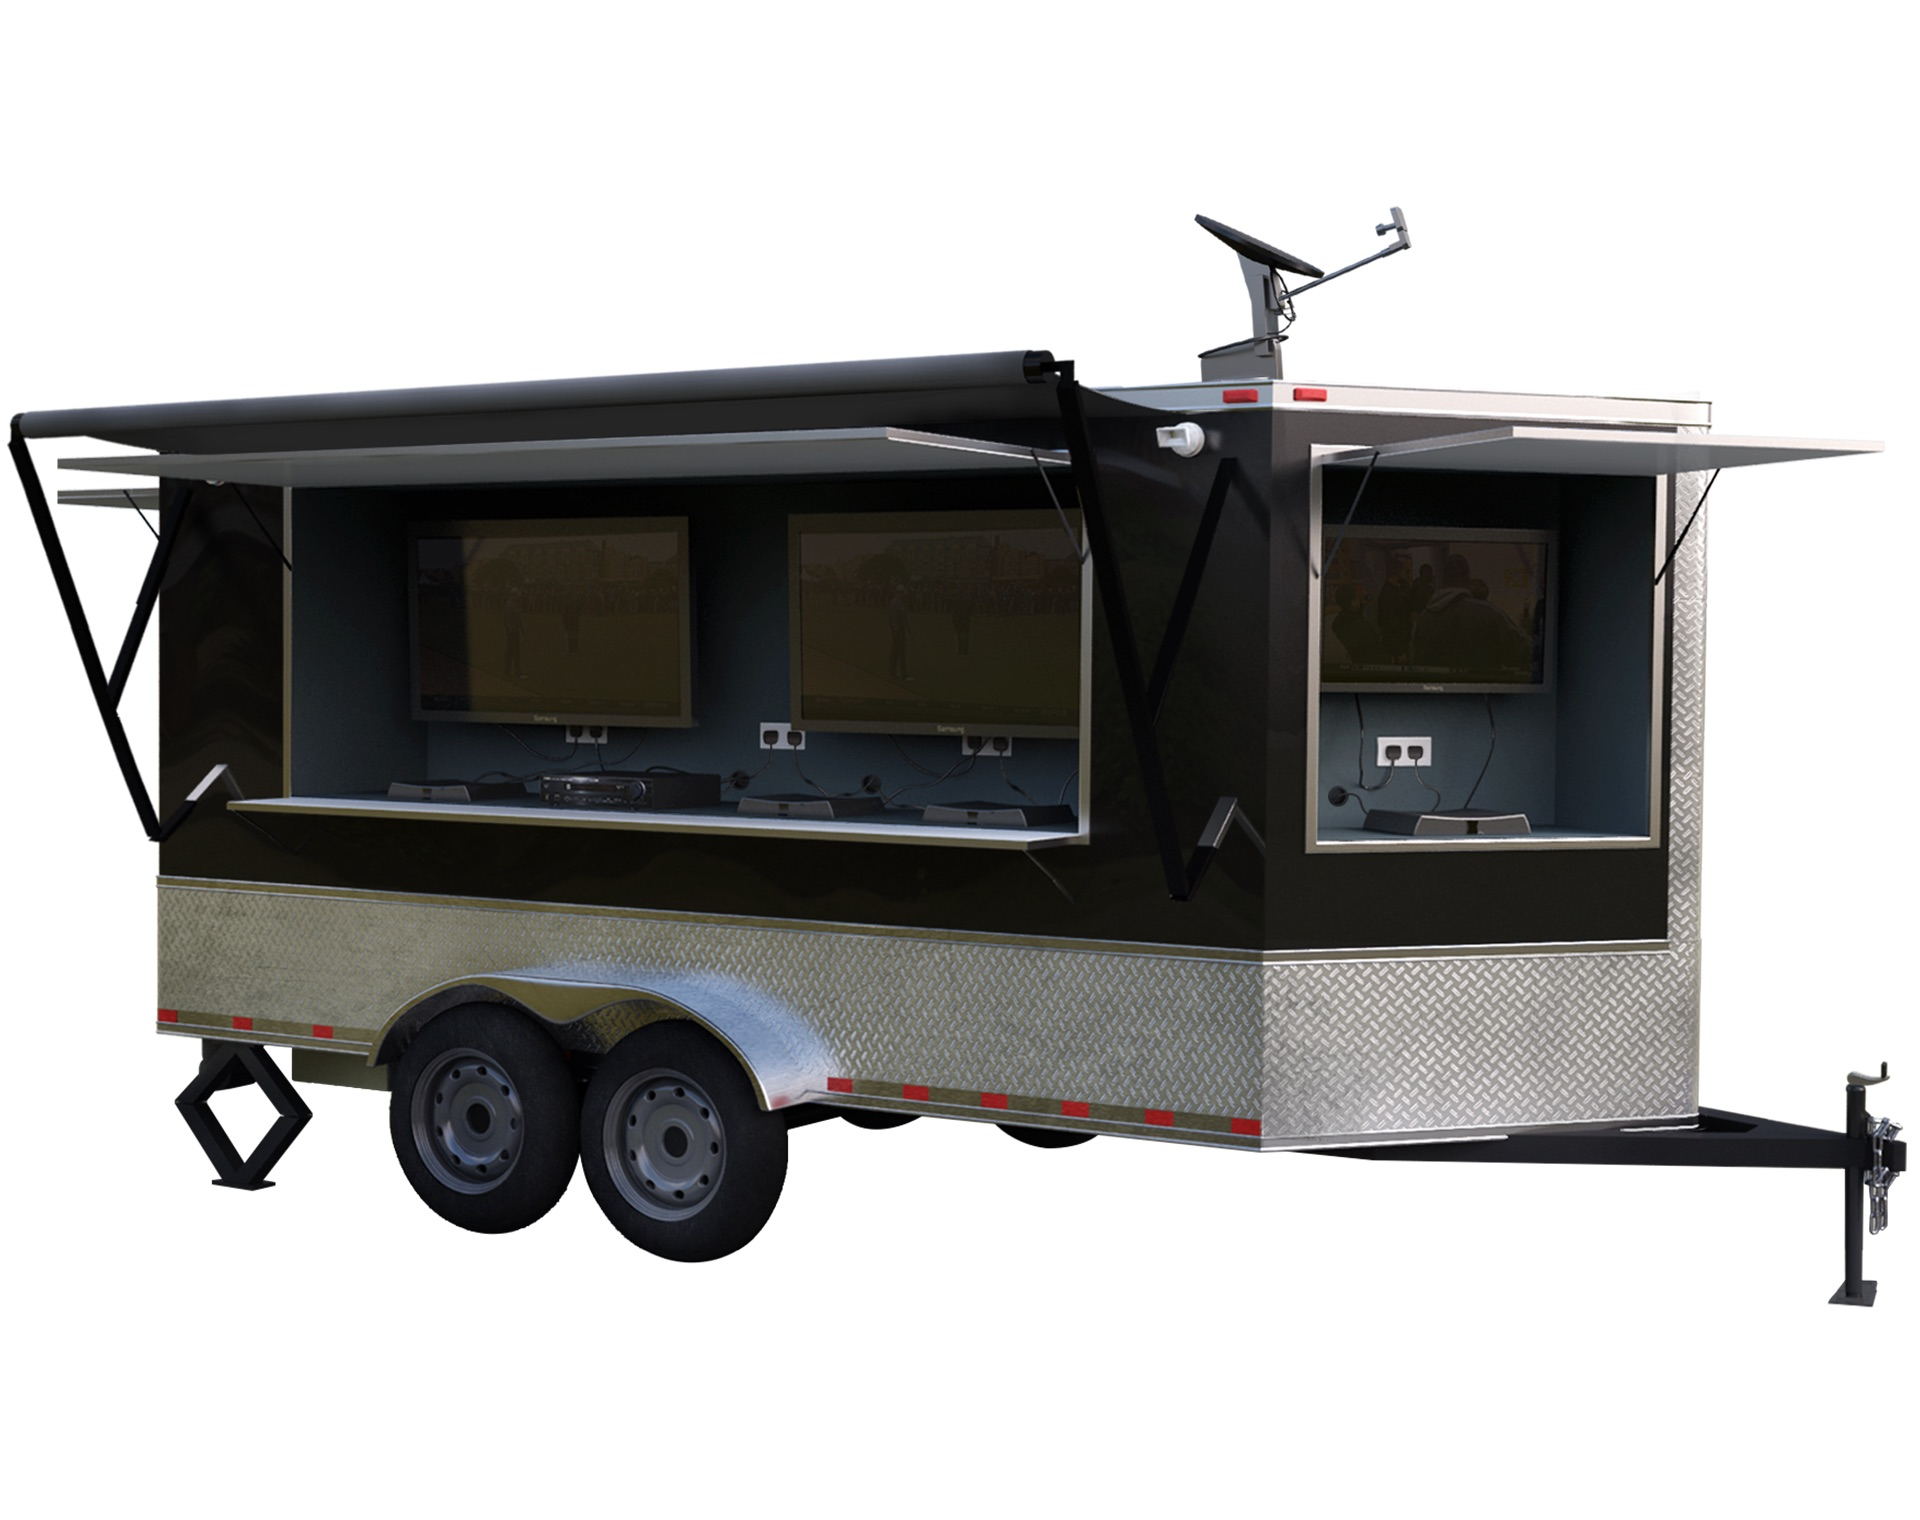 tailgate-trailer-rentals-company-tailgate-tonic